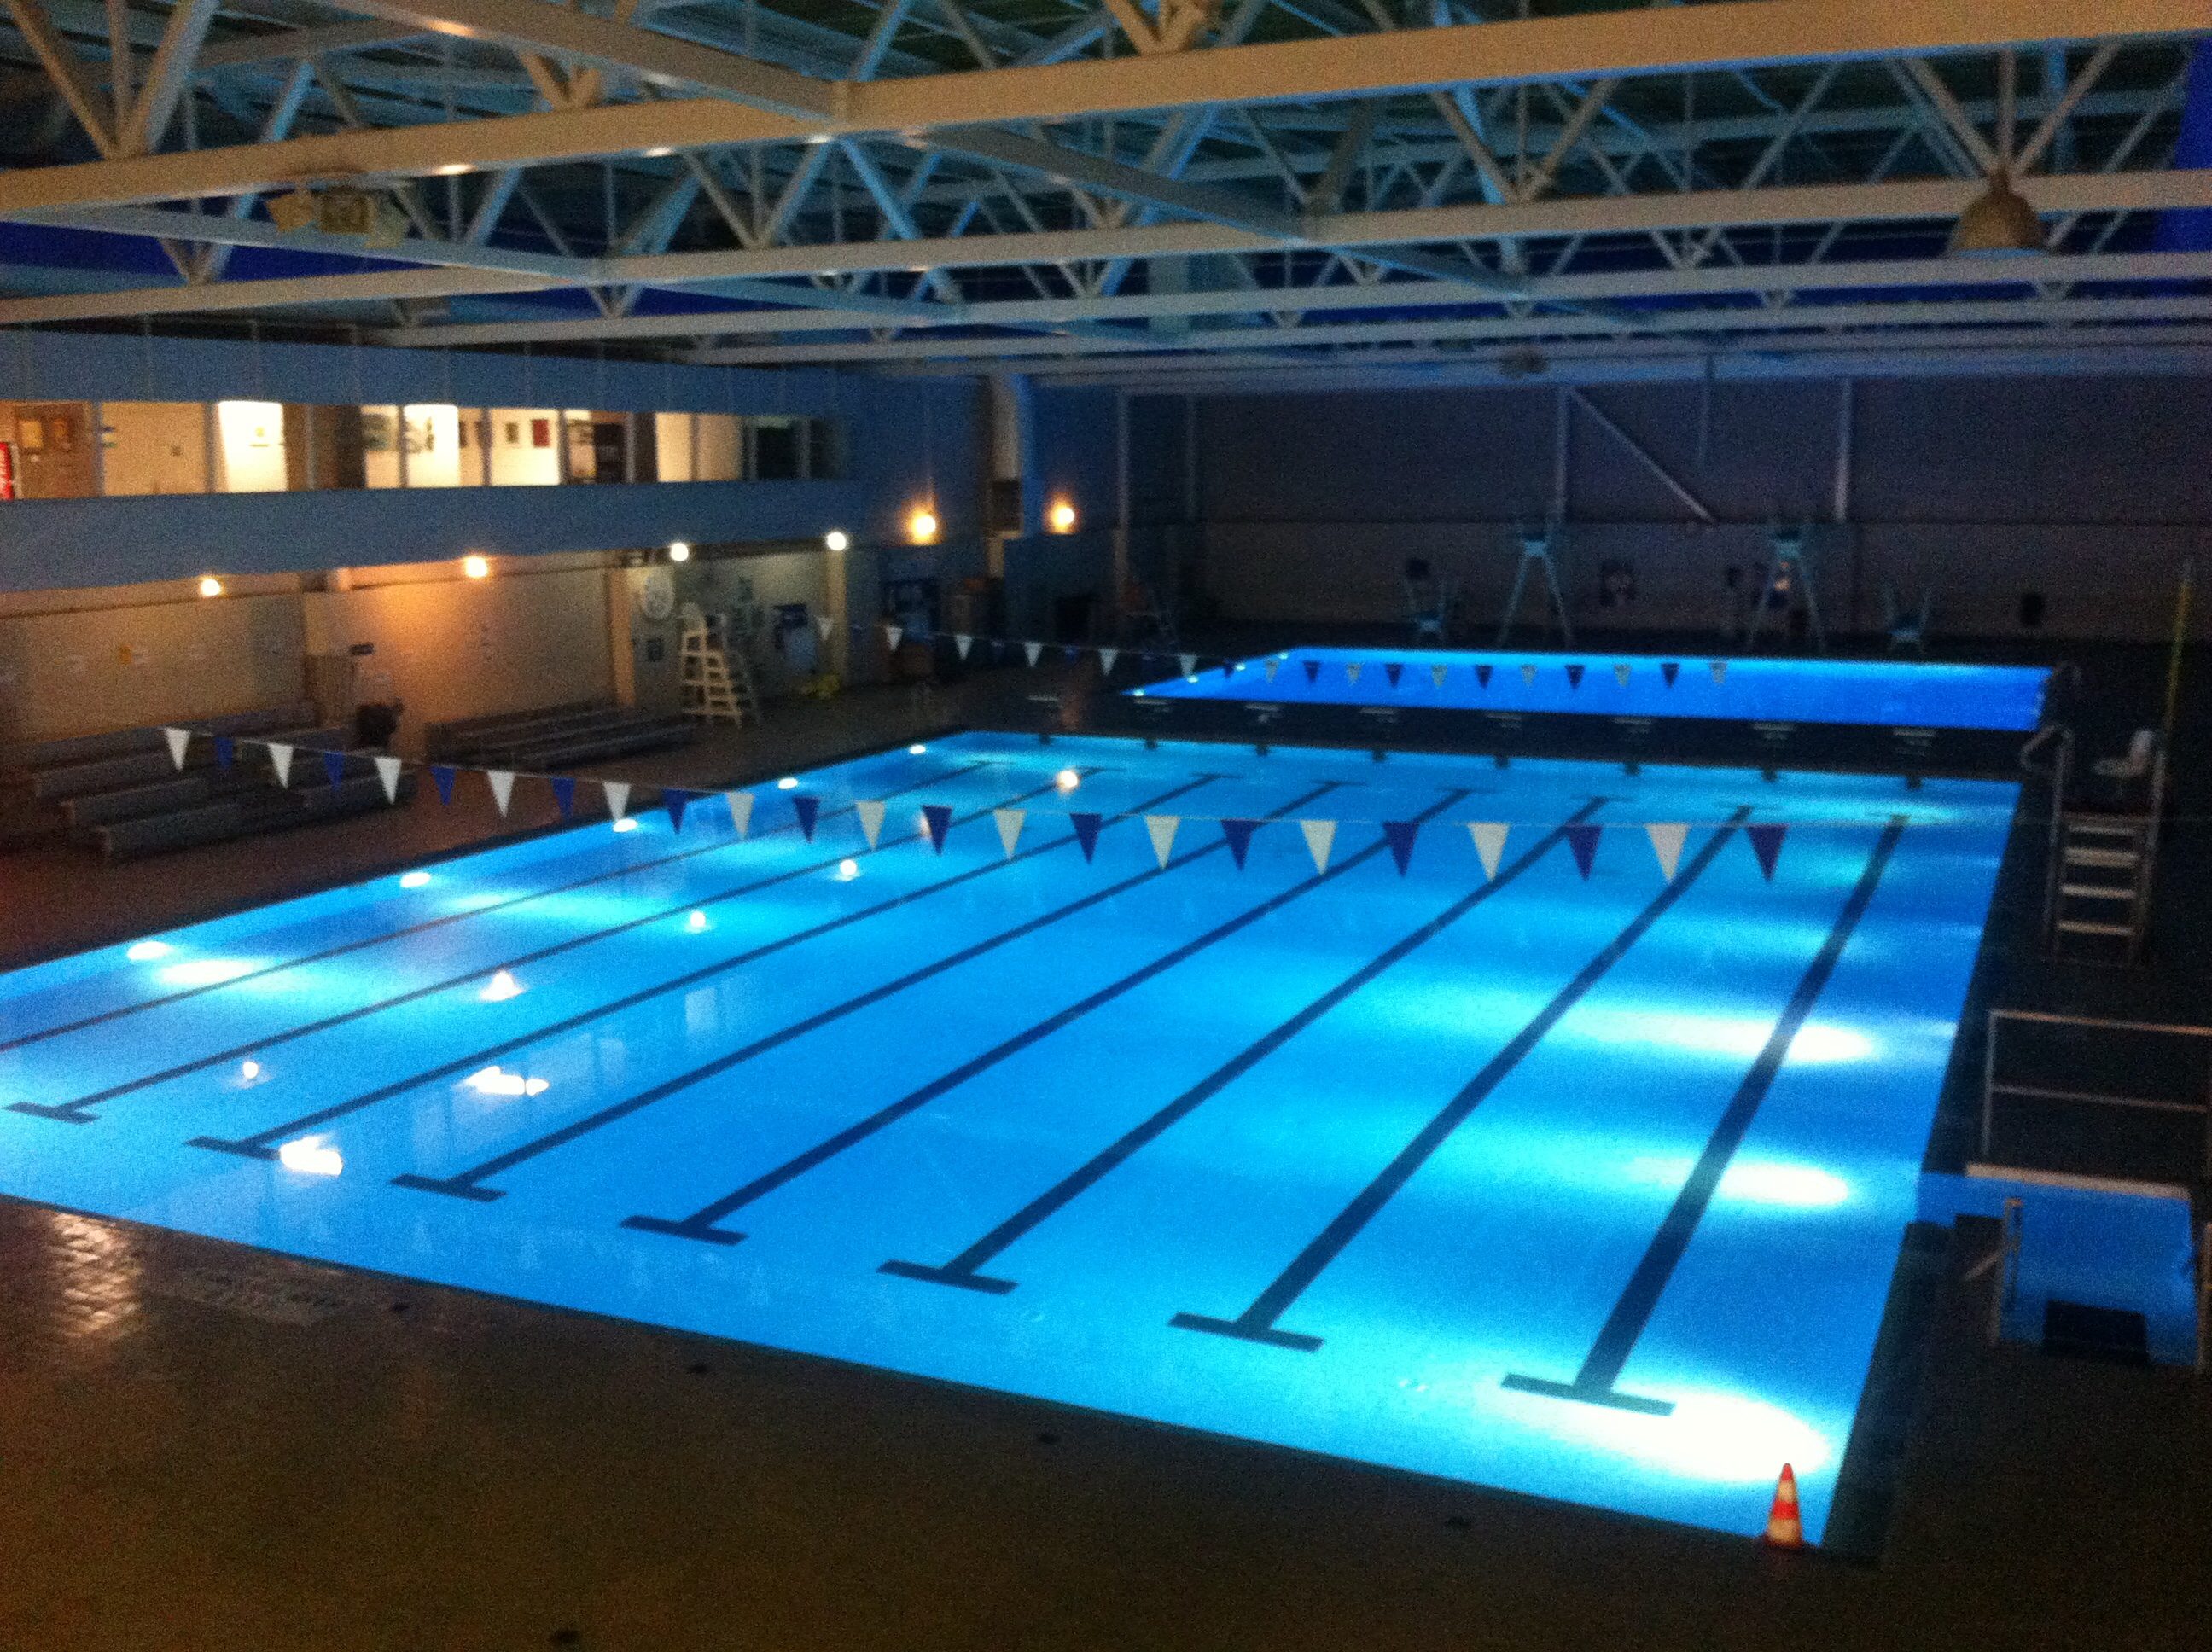 filewalter baker sports center lap pooljpg - Olympic Swimming Pool 2013